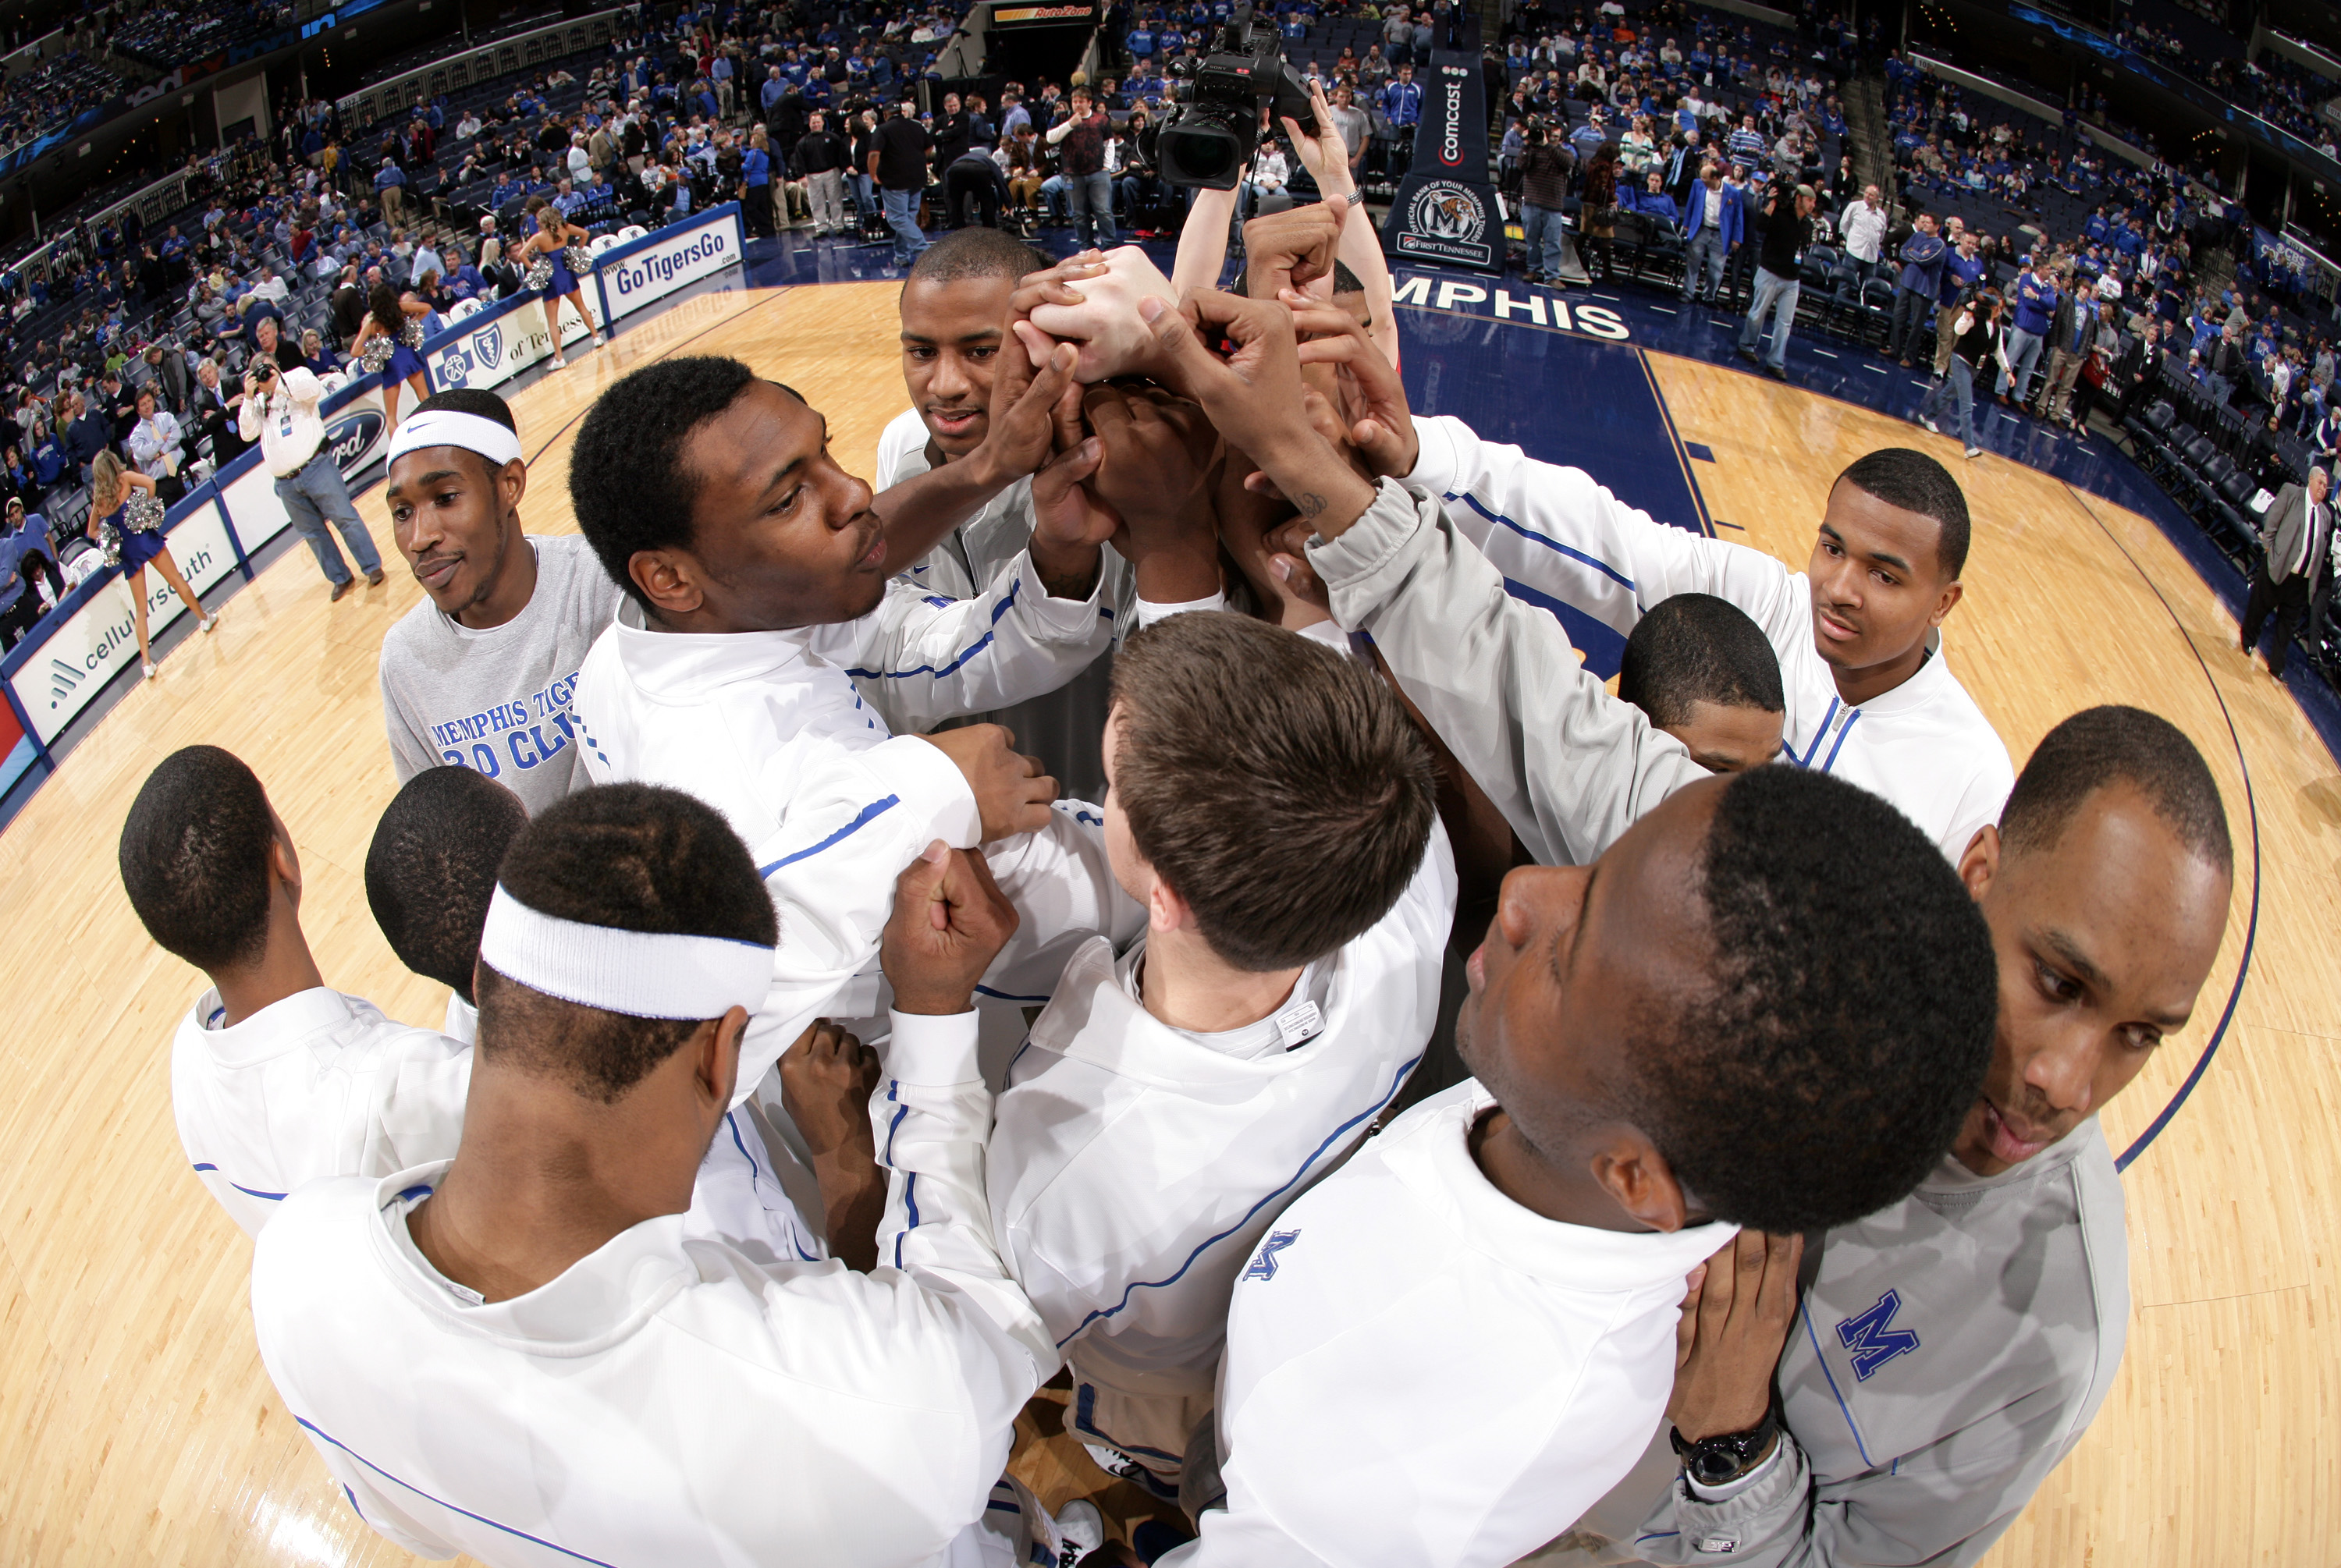 Tarik Black #10 of the Memphis Tigers leads his team in a huddle before a game against the UCF Knights on January 26, 2011 at FedExForum in Memphis, Tennessee.